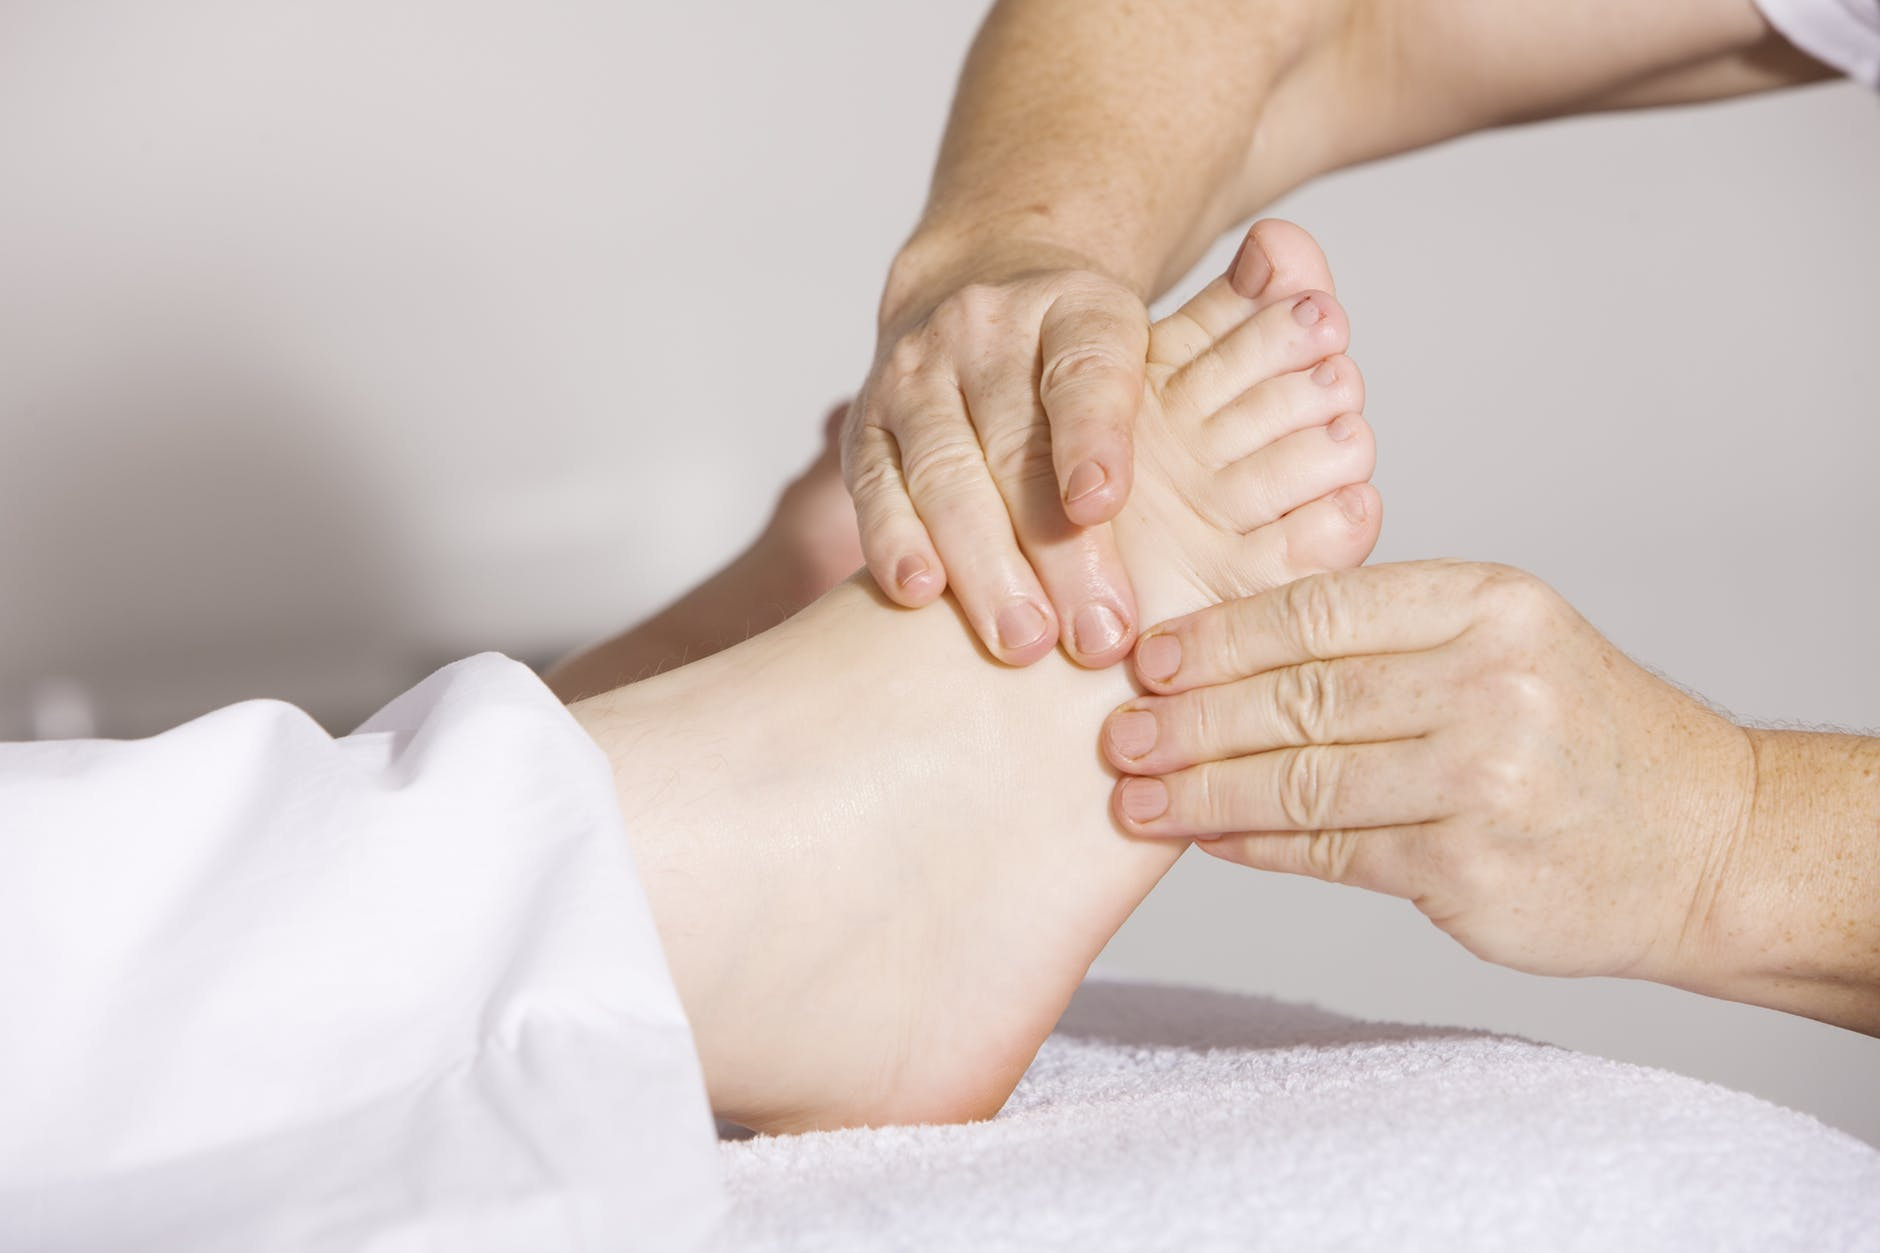 Foot reflexology massage treatment for feet guide in 2018 foot reflexology massage treatment for feet guide in 2018 nicershoes xflitez Image collections